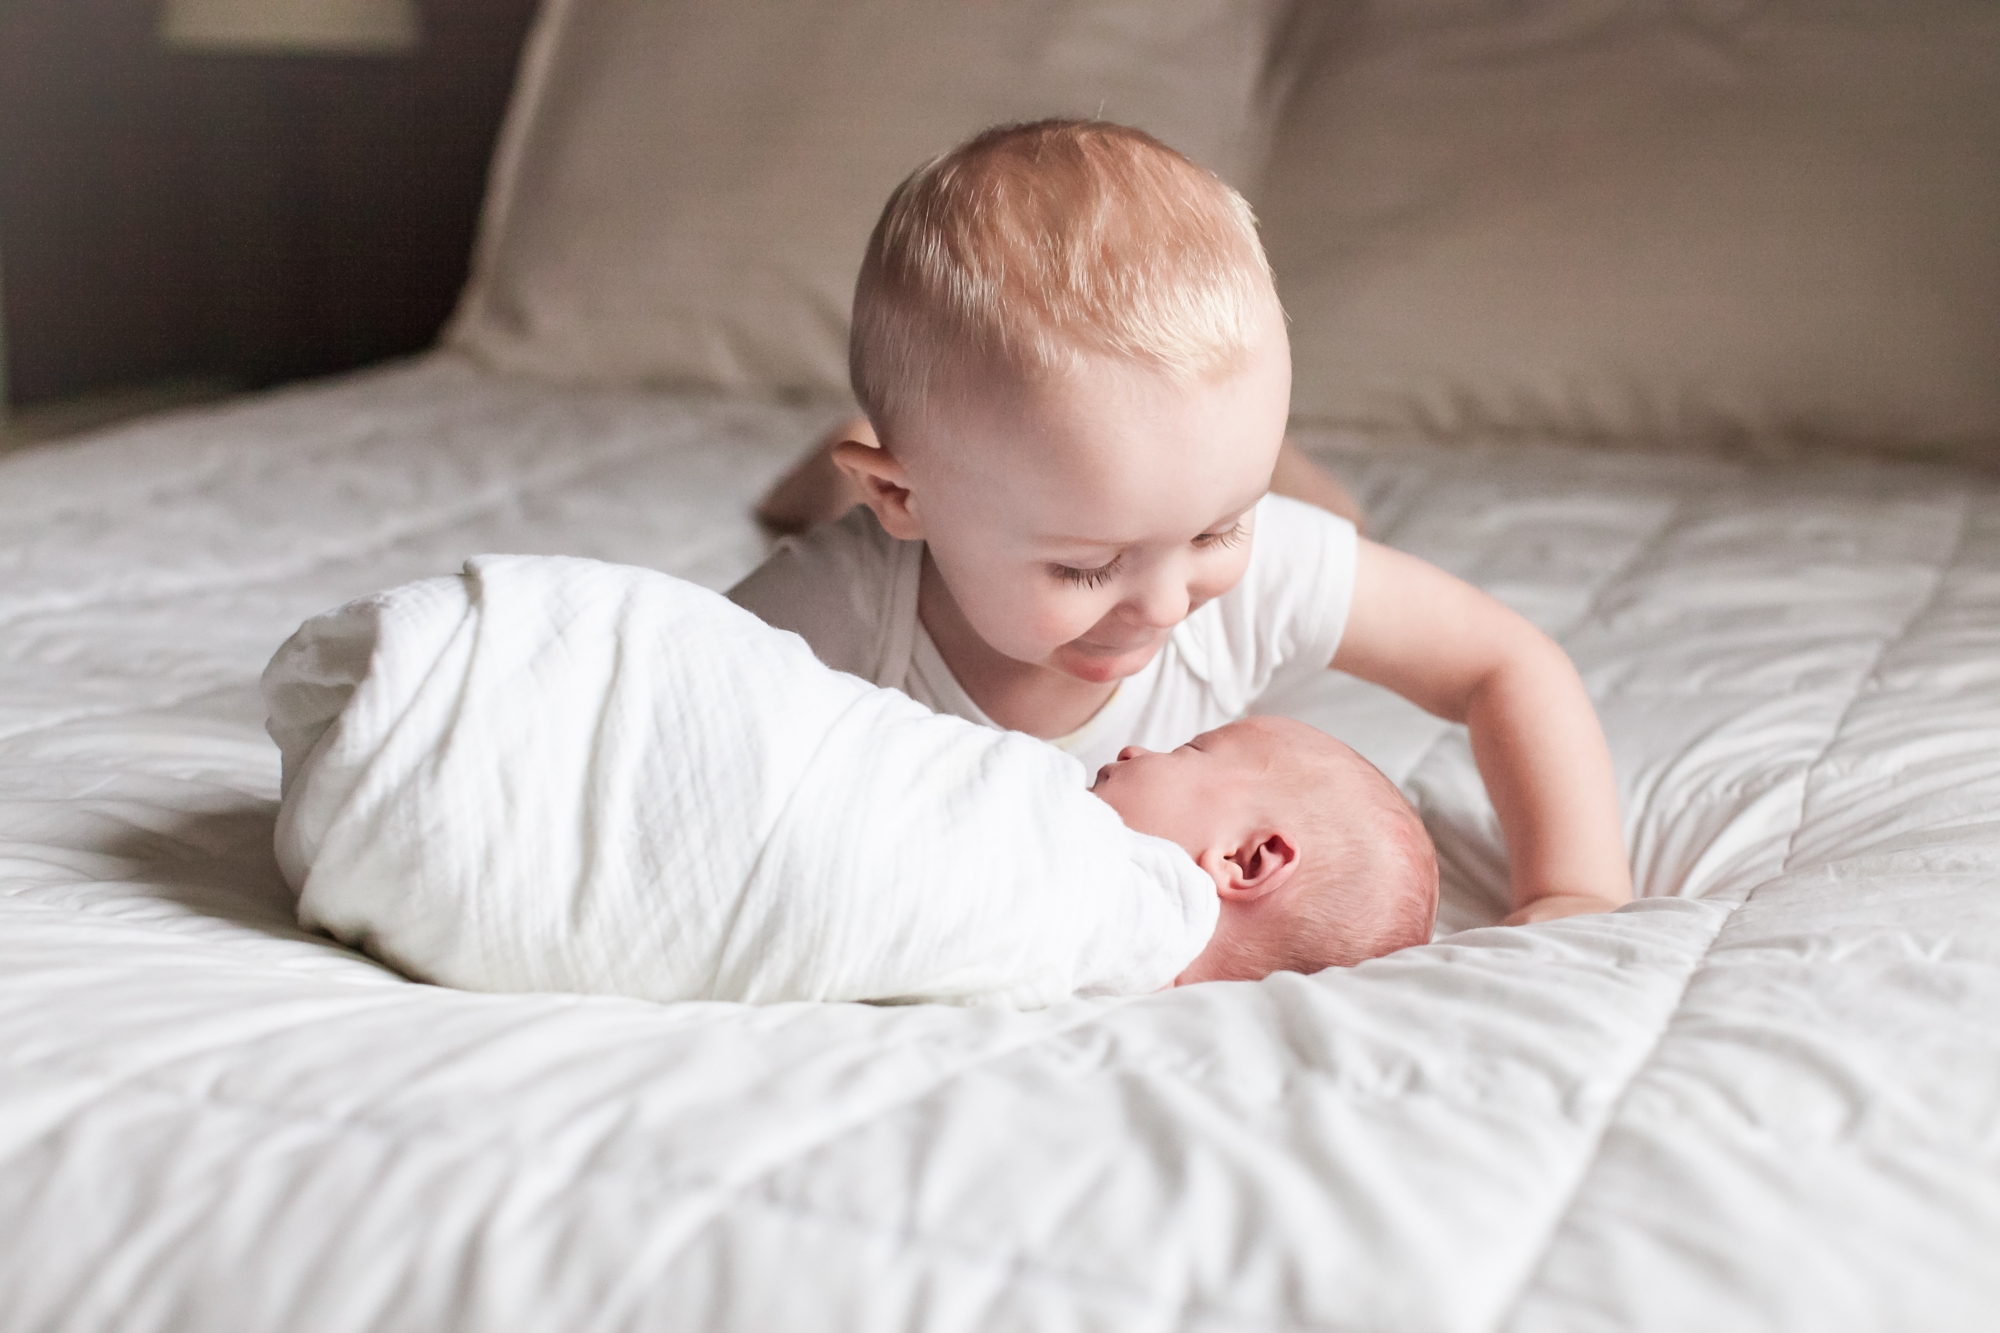 newborn-photos-54.jpg